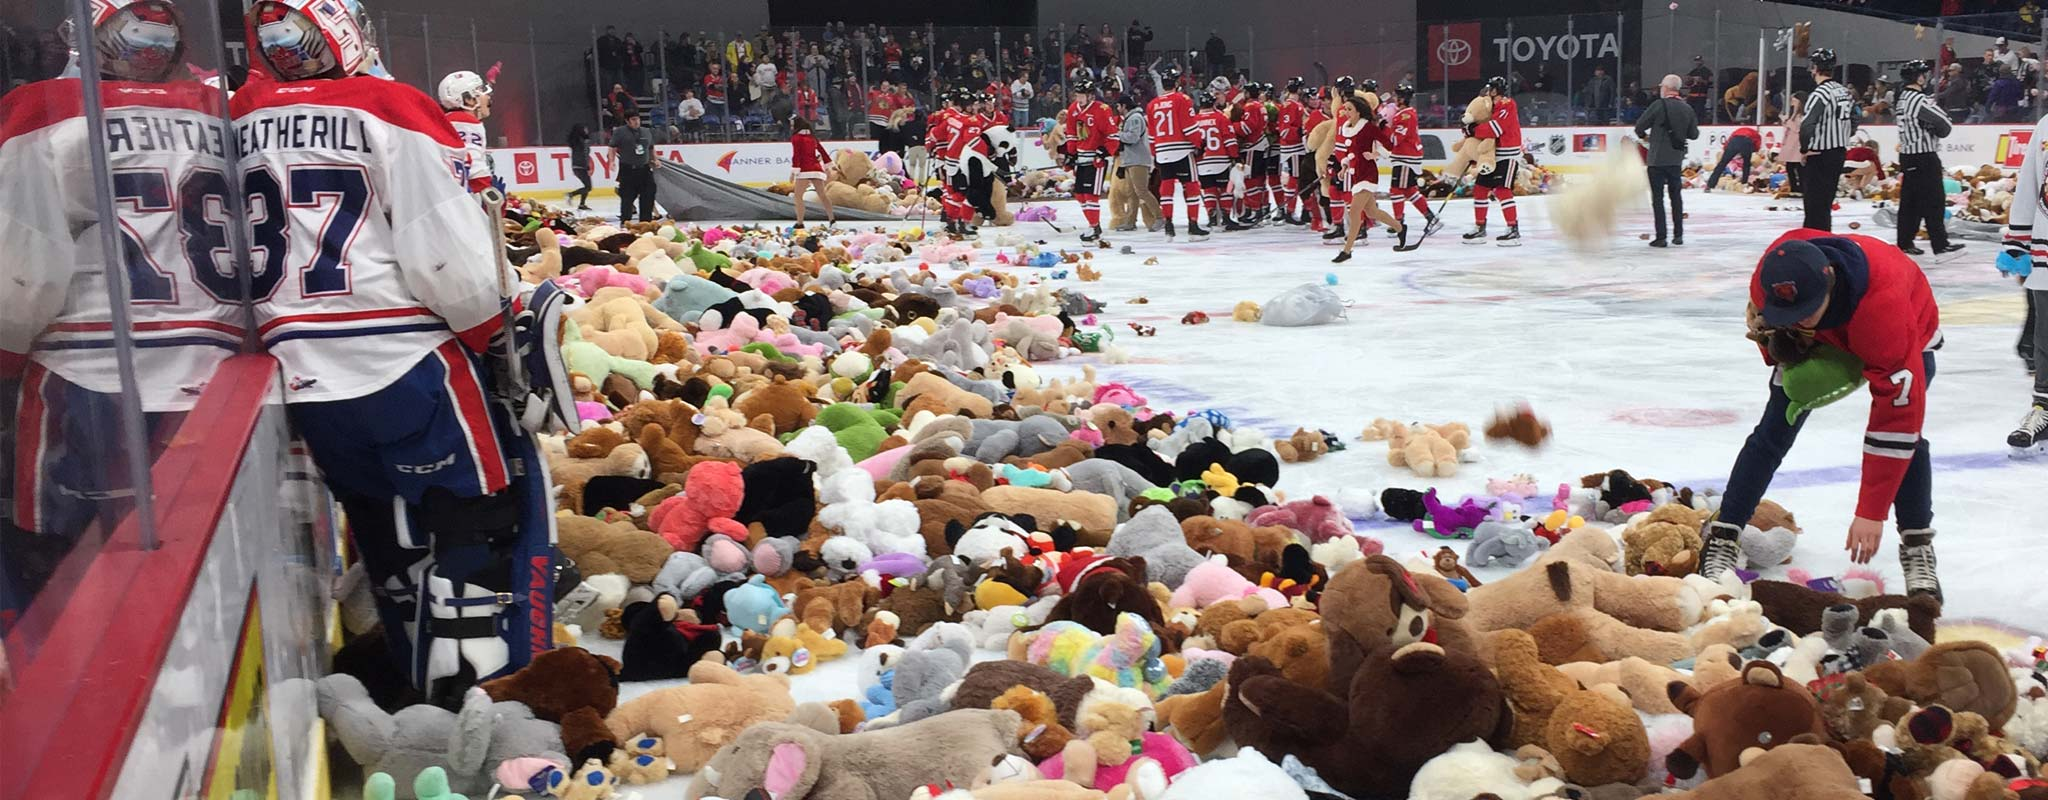 Ice rink full of hockey players and teddy bears after a teddy bear toss event.